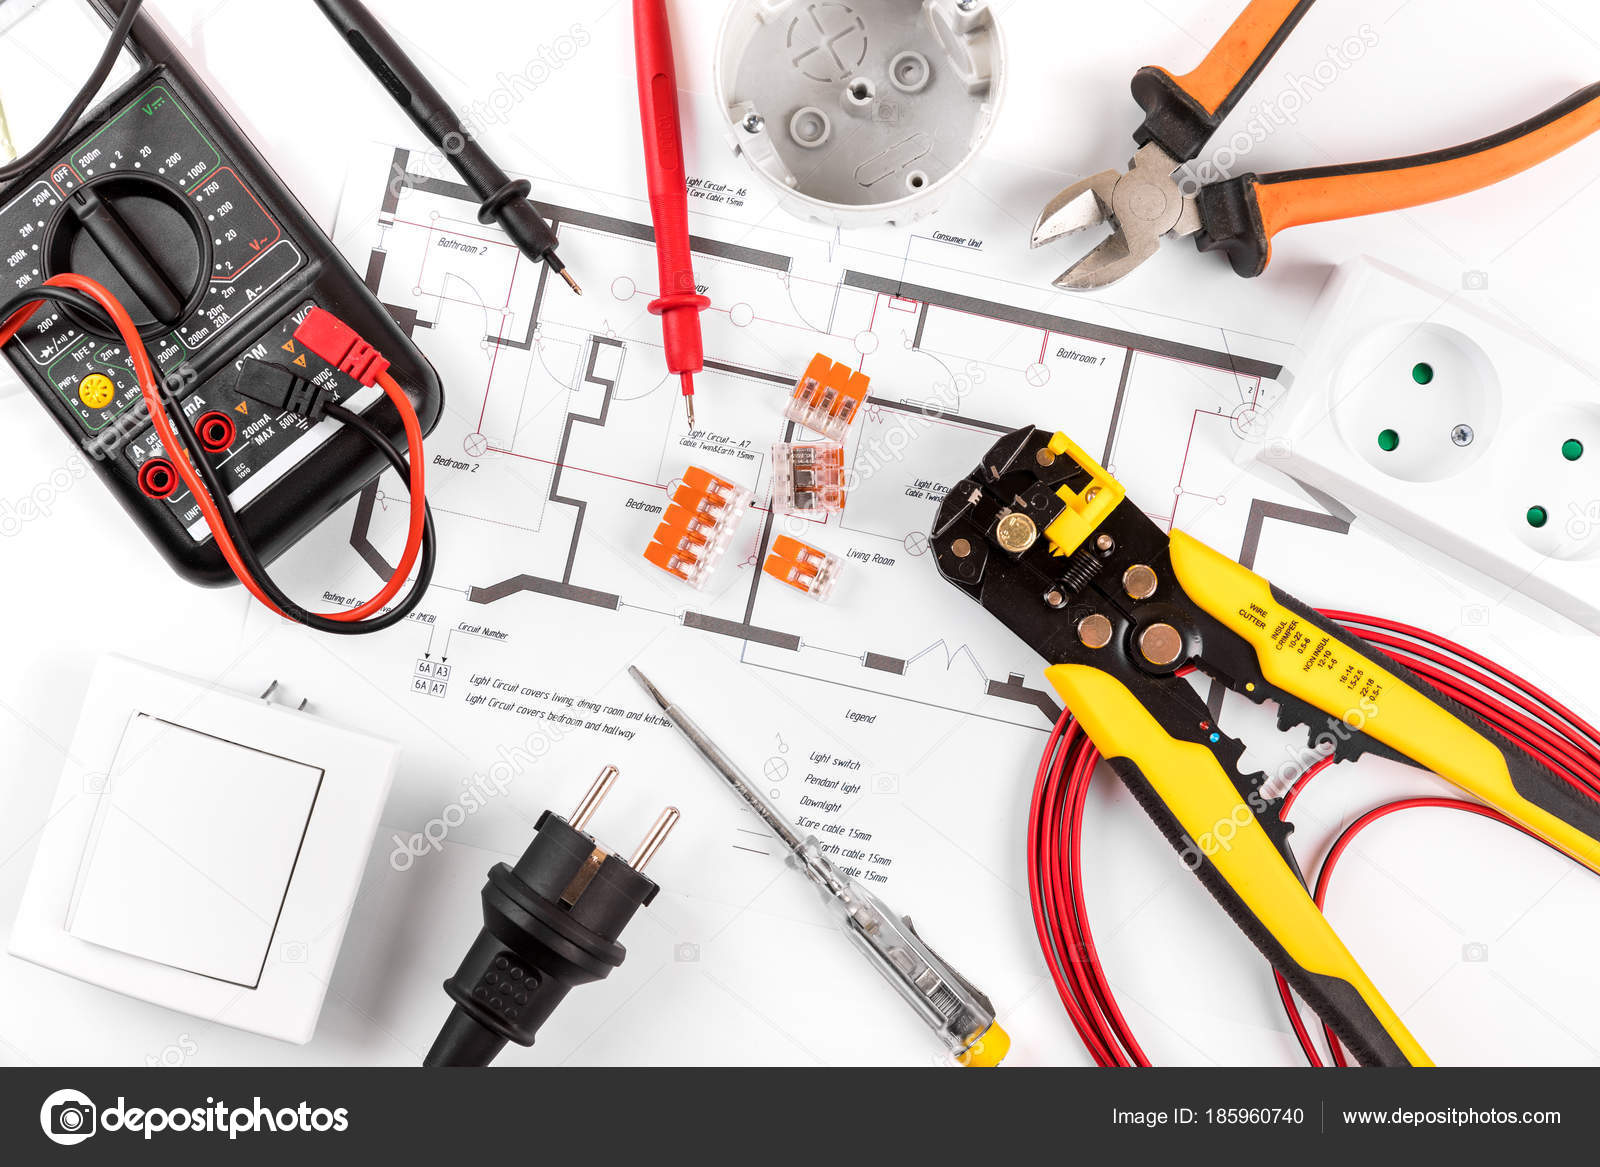 hight resolution of electrical tools and equipment on wiring diagram top view u2014 stockelectrical tools and equipment on